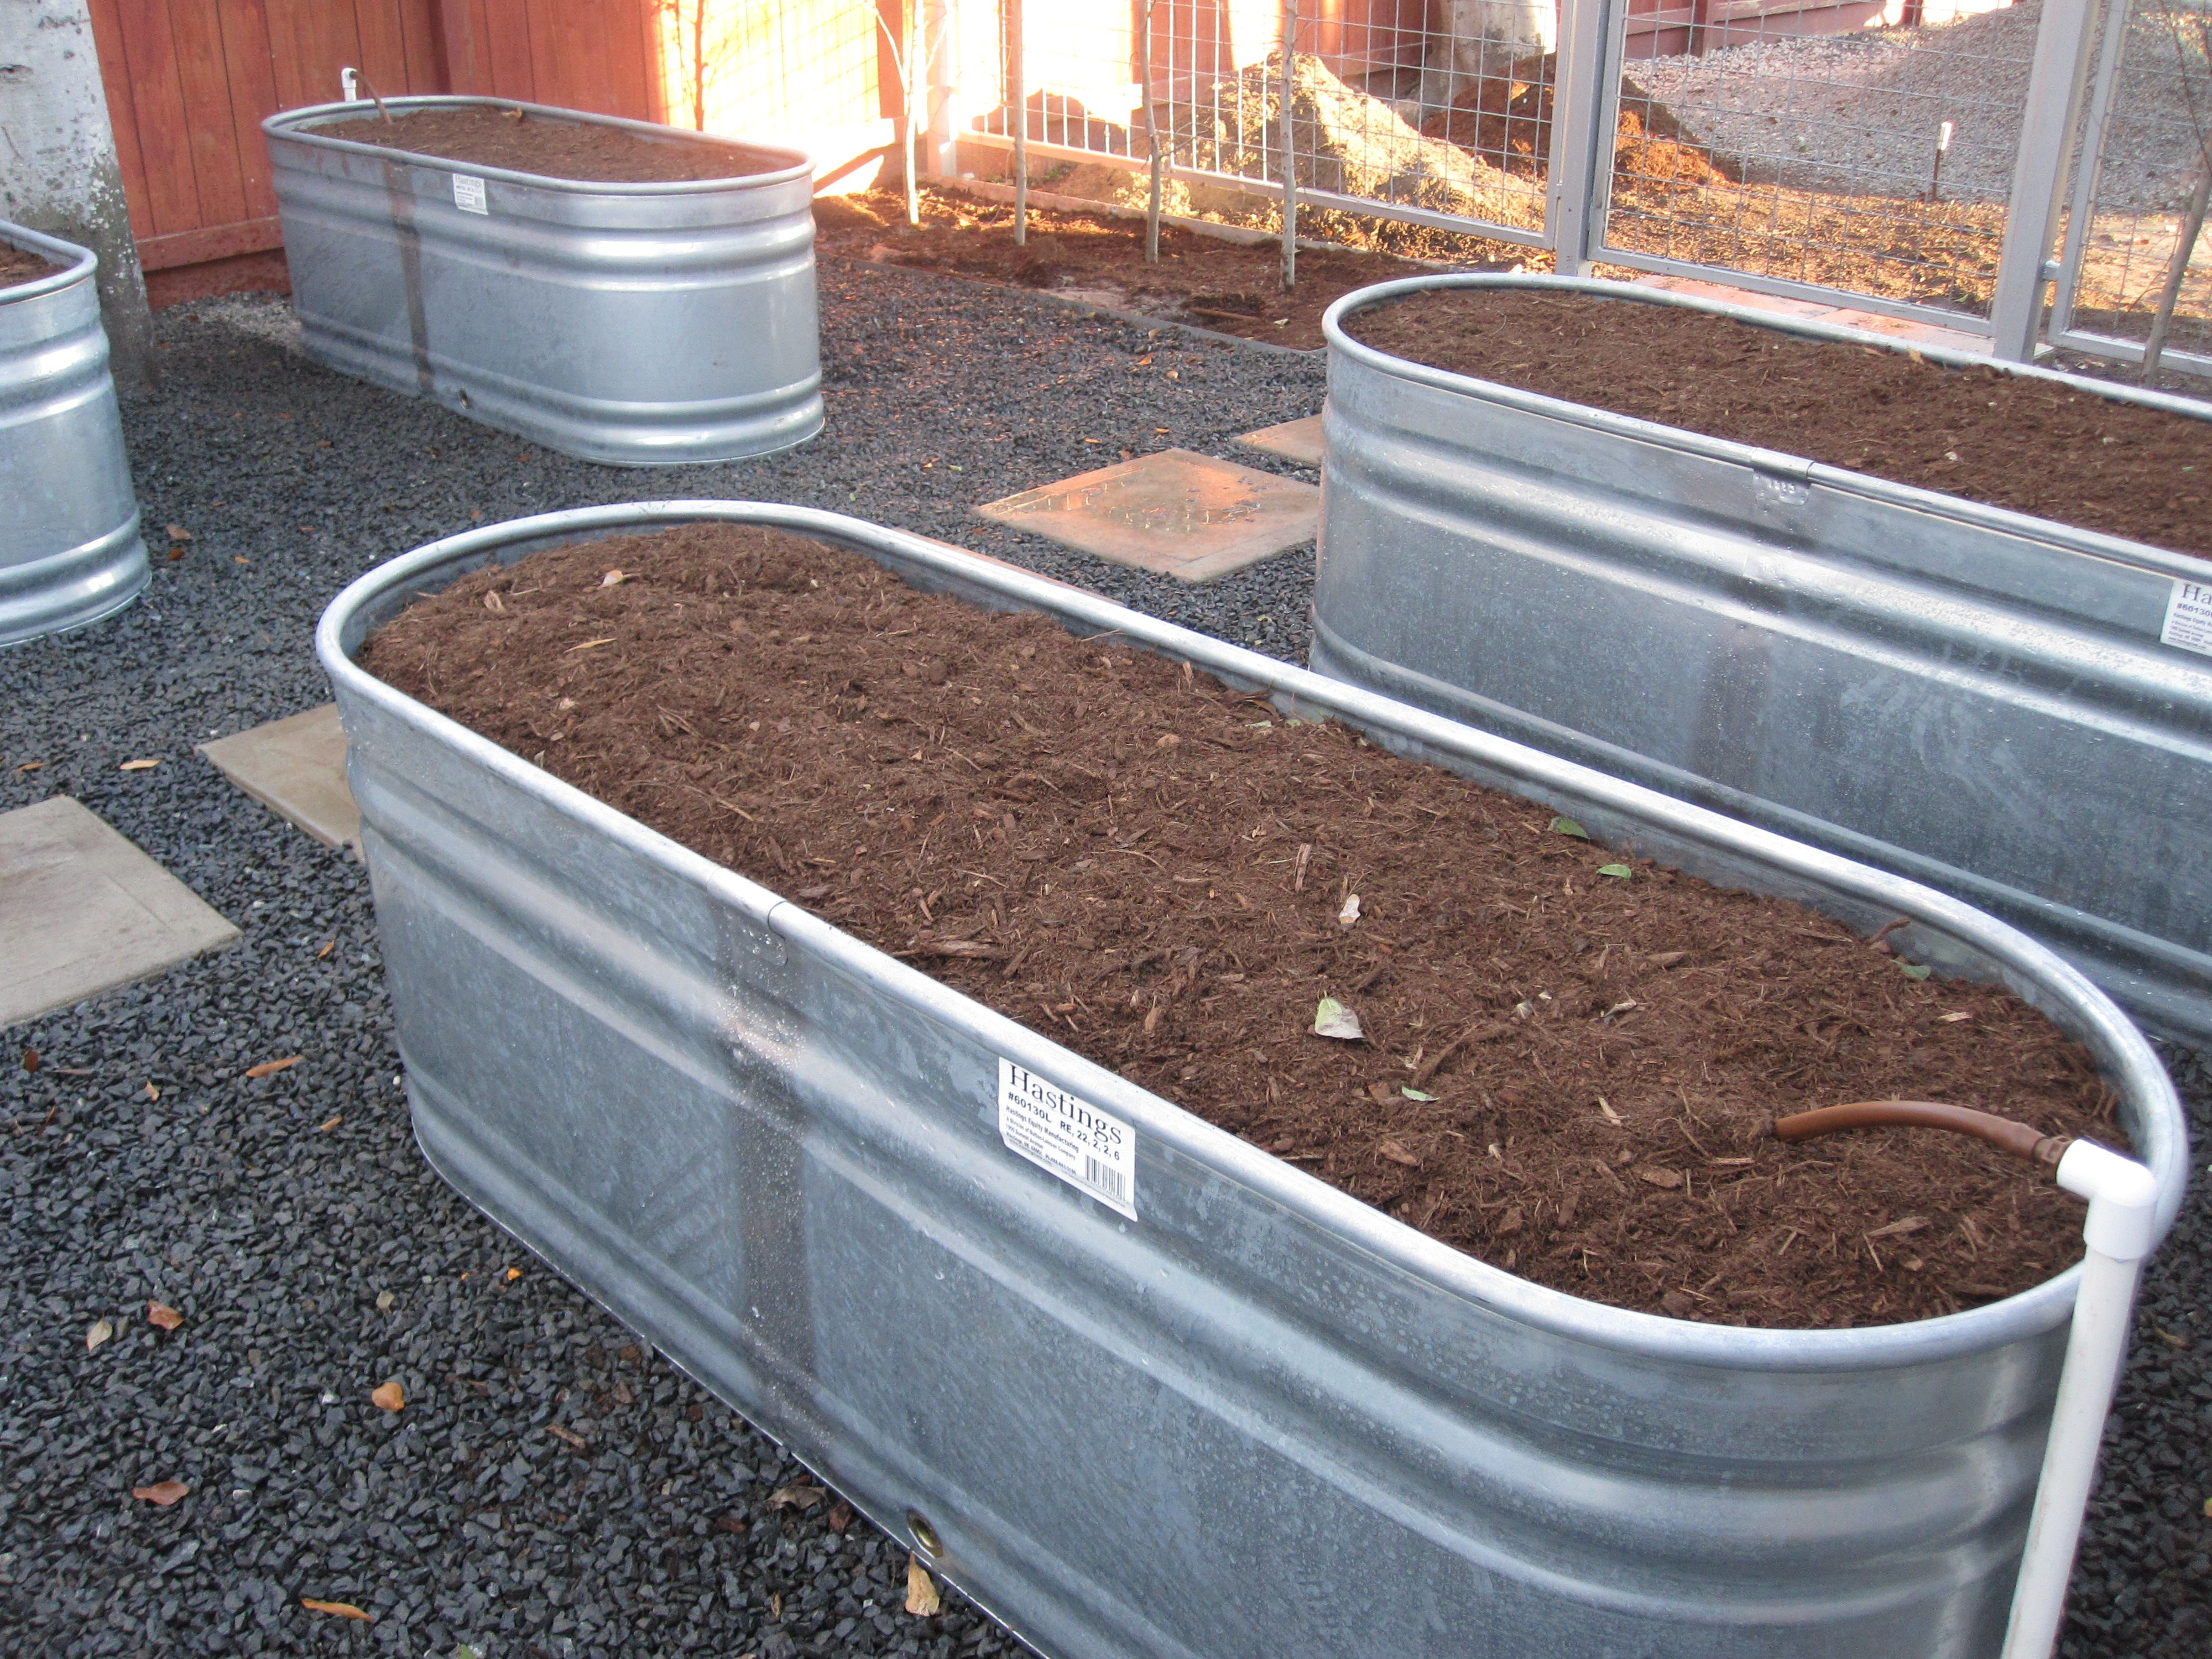 High Quality Vegetable Garden Irrigation Design | Here Is A Watering Trough Turned Into  A Raised Bed For Vegetables .